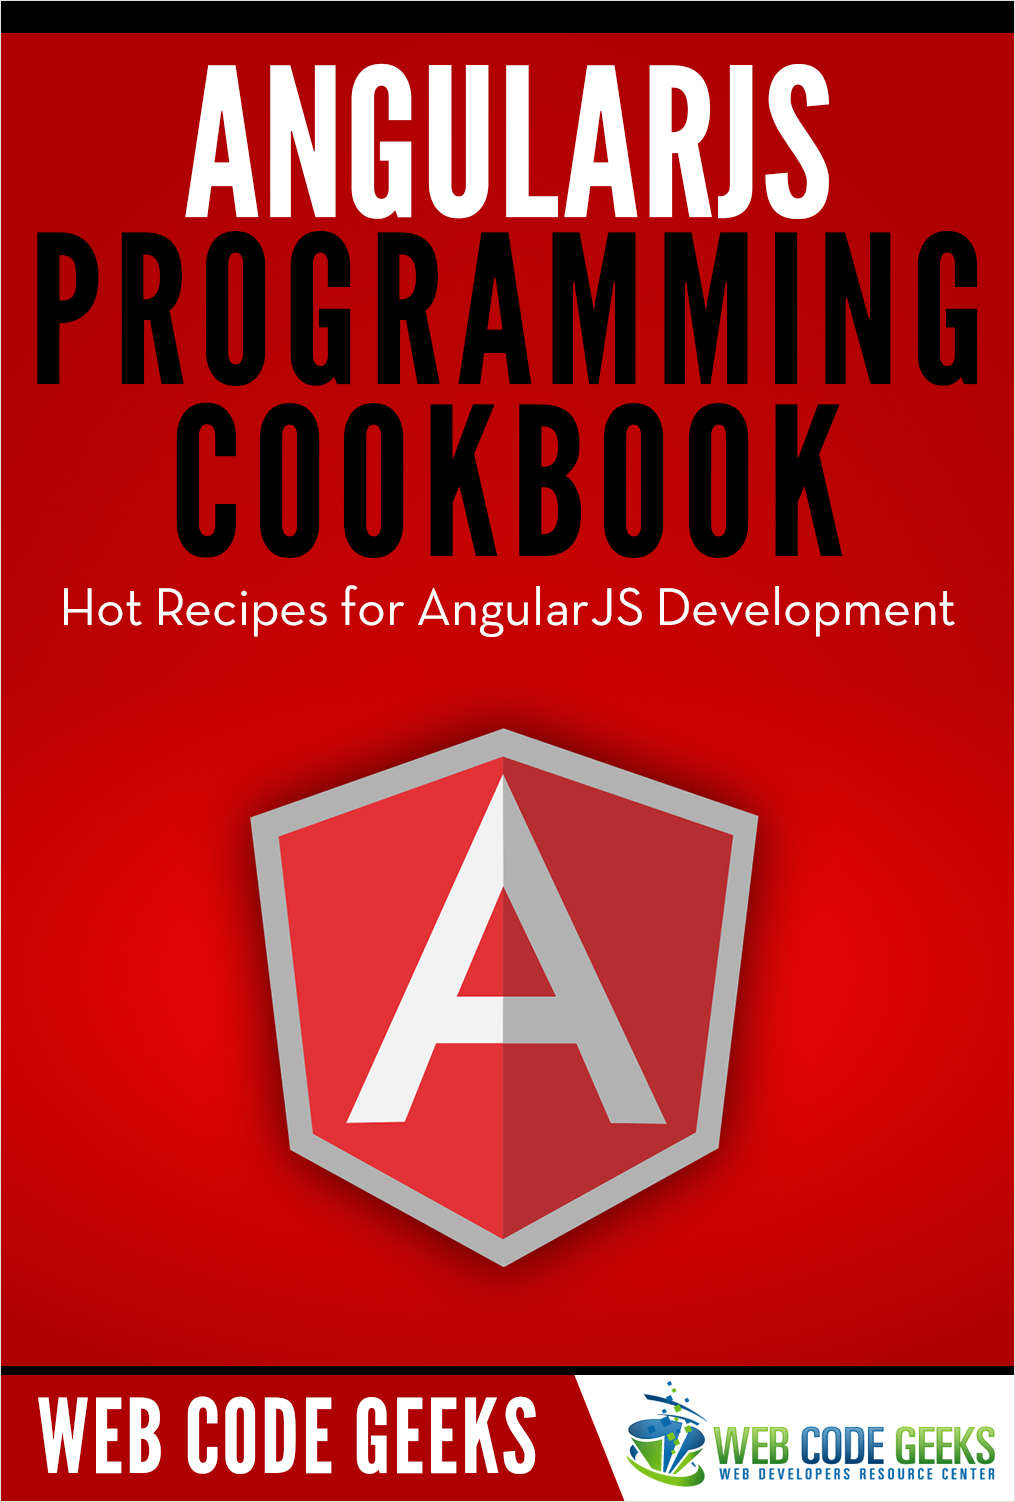 AngularJS Programming Cookbook